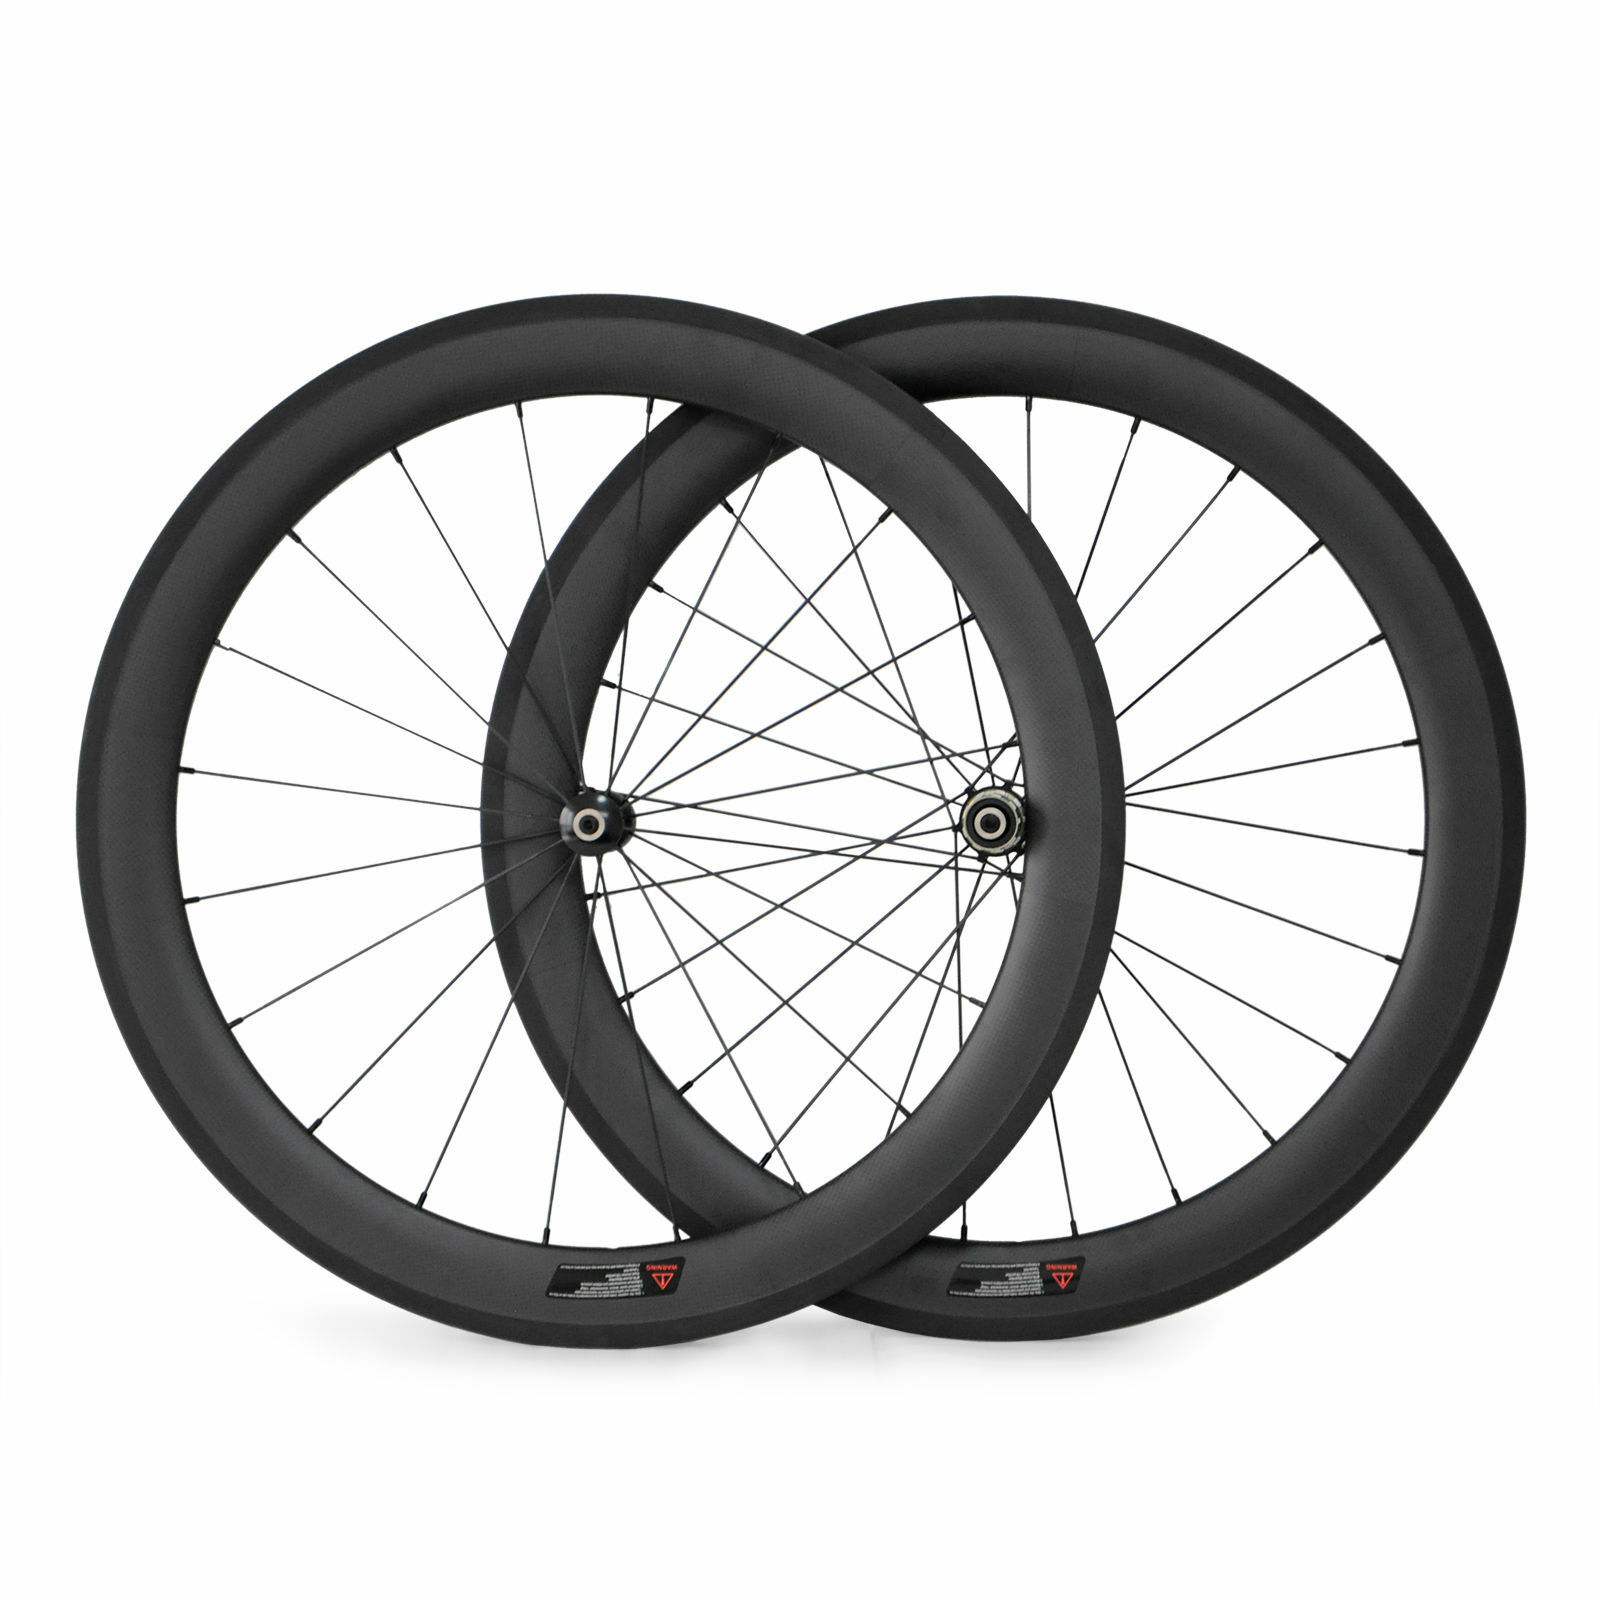 Straight pull Carbon Wheels 700C 50mm Clincher Carbon Road Bike Bicycle Wheelset